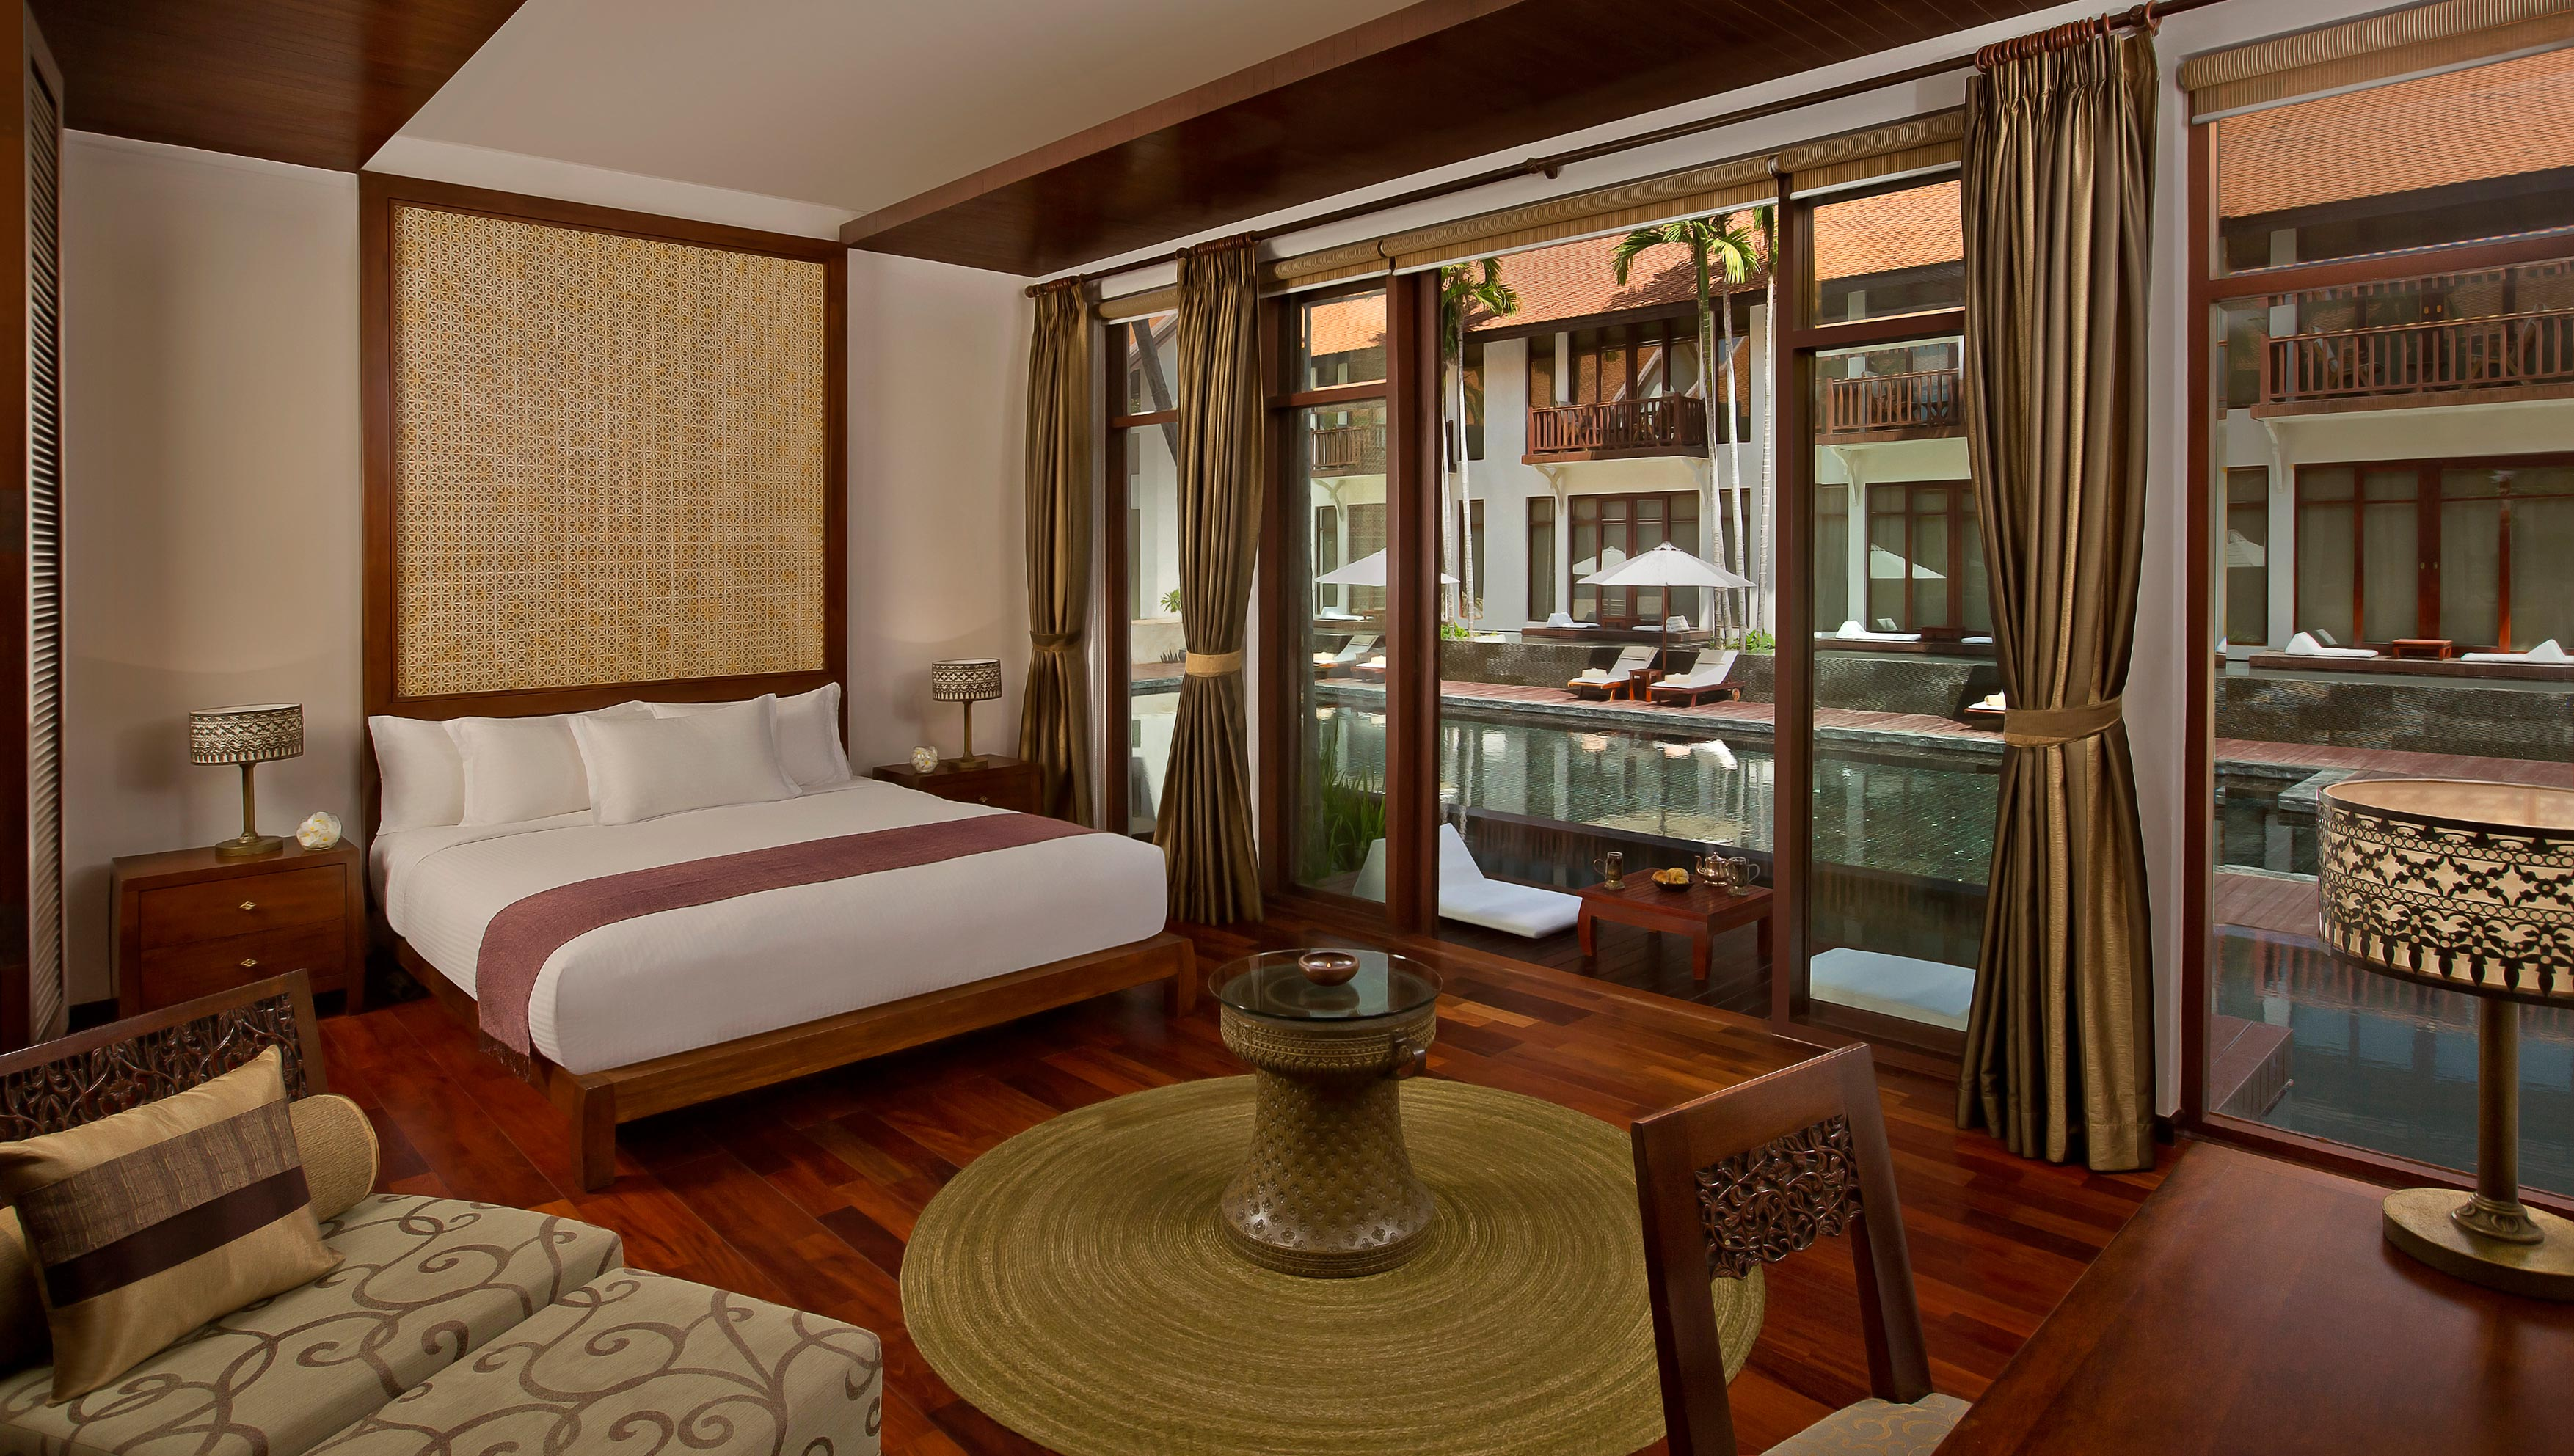 A deluxe room at the Anantara Angkor